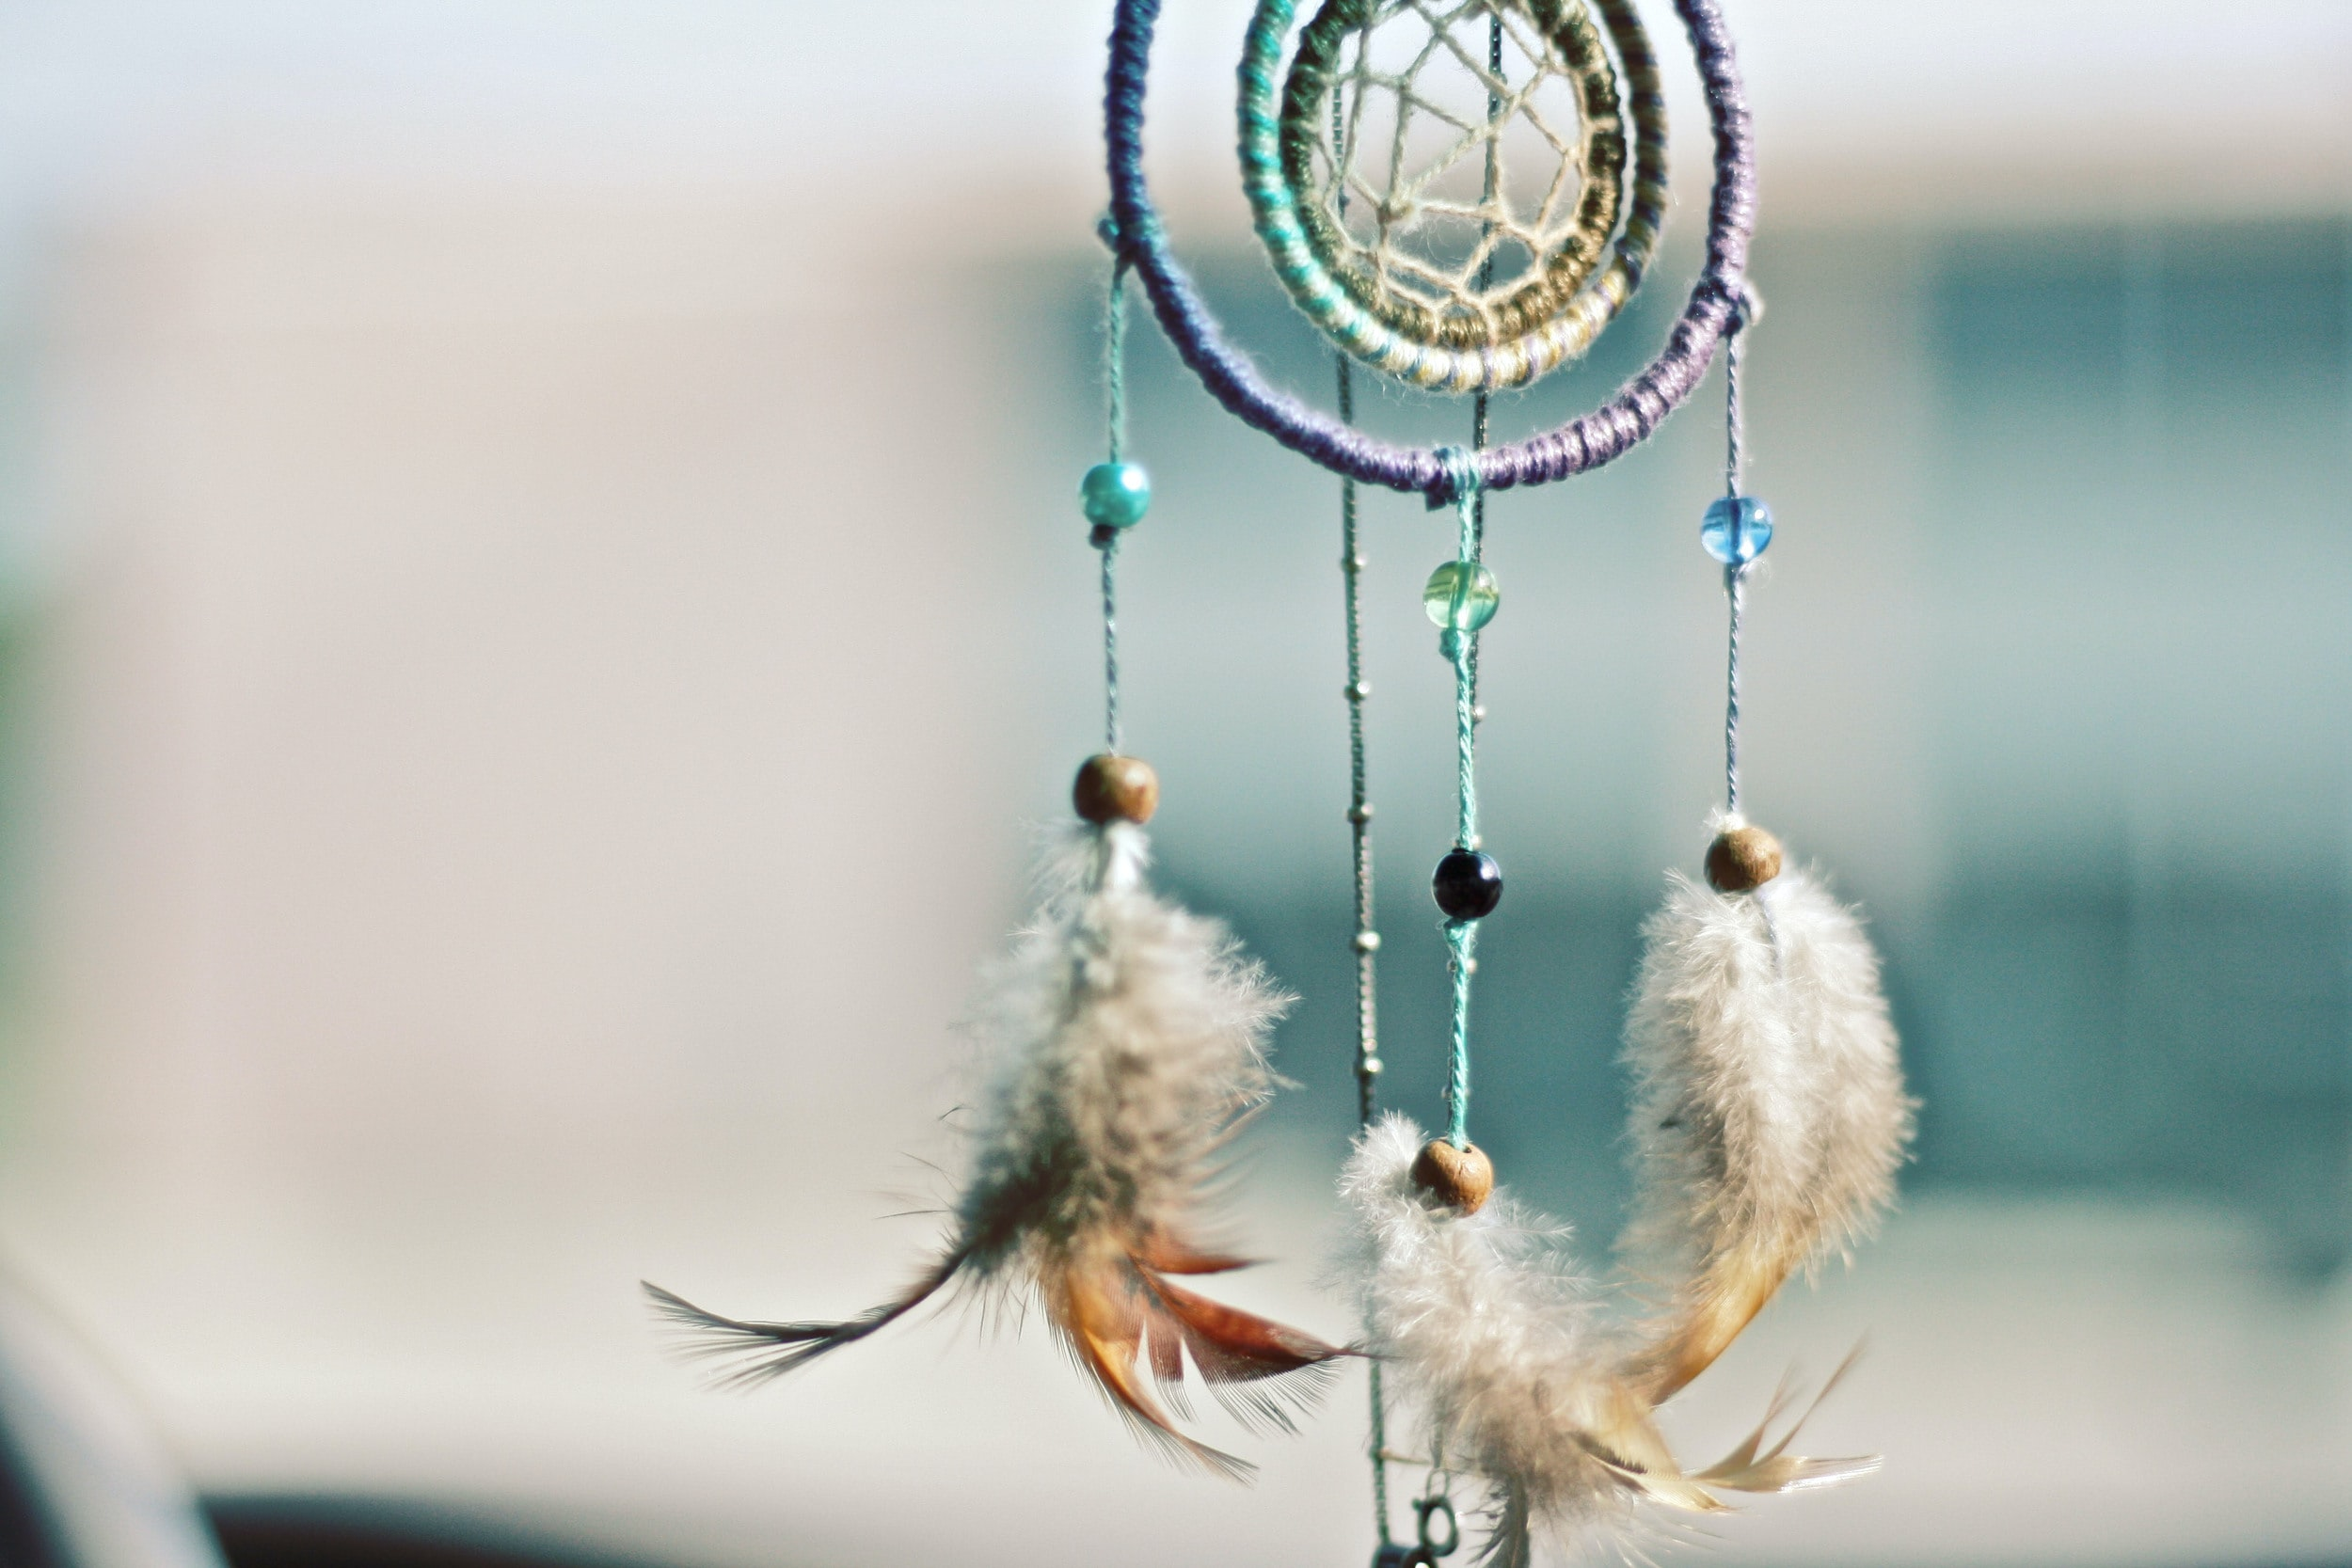 selective focus photography of multicolored dream catcher